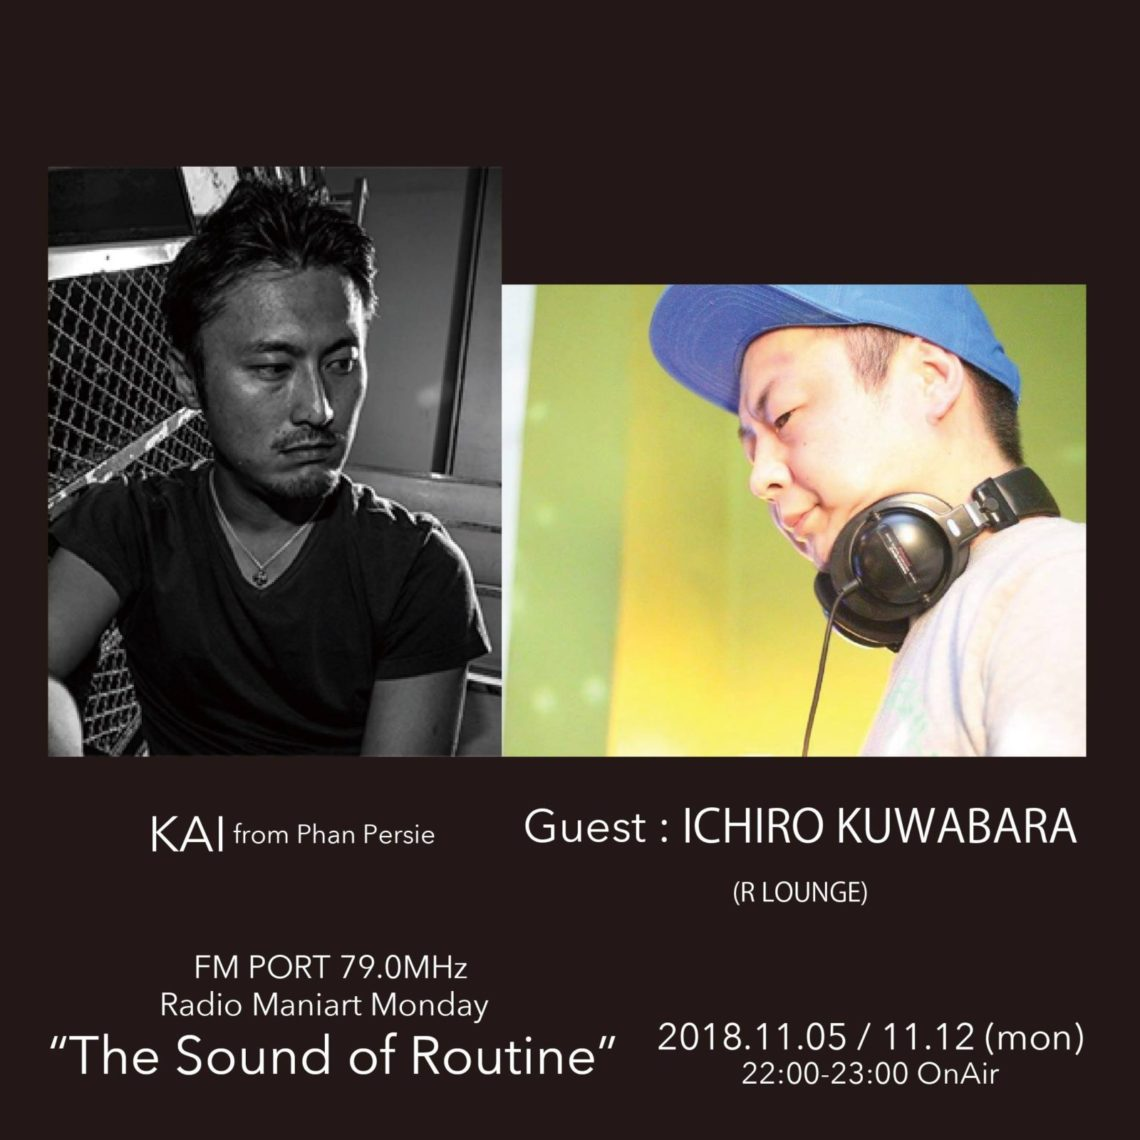 2018.11.5 MON, 11.12 MON – KAI : Navigator on FM PORT / the Sound of Routine – Guest: ICHIRO KUWABARA